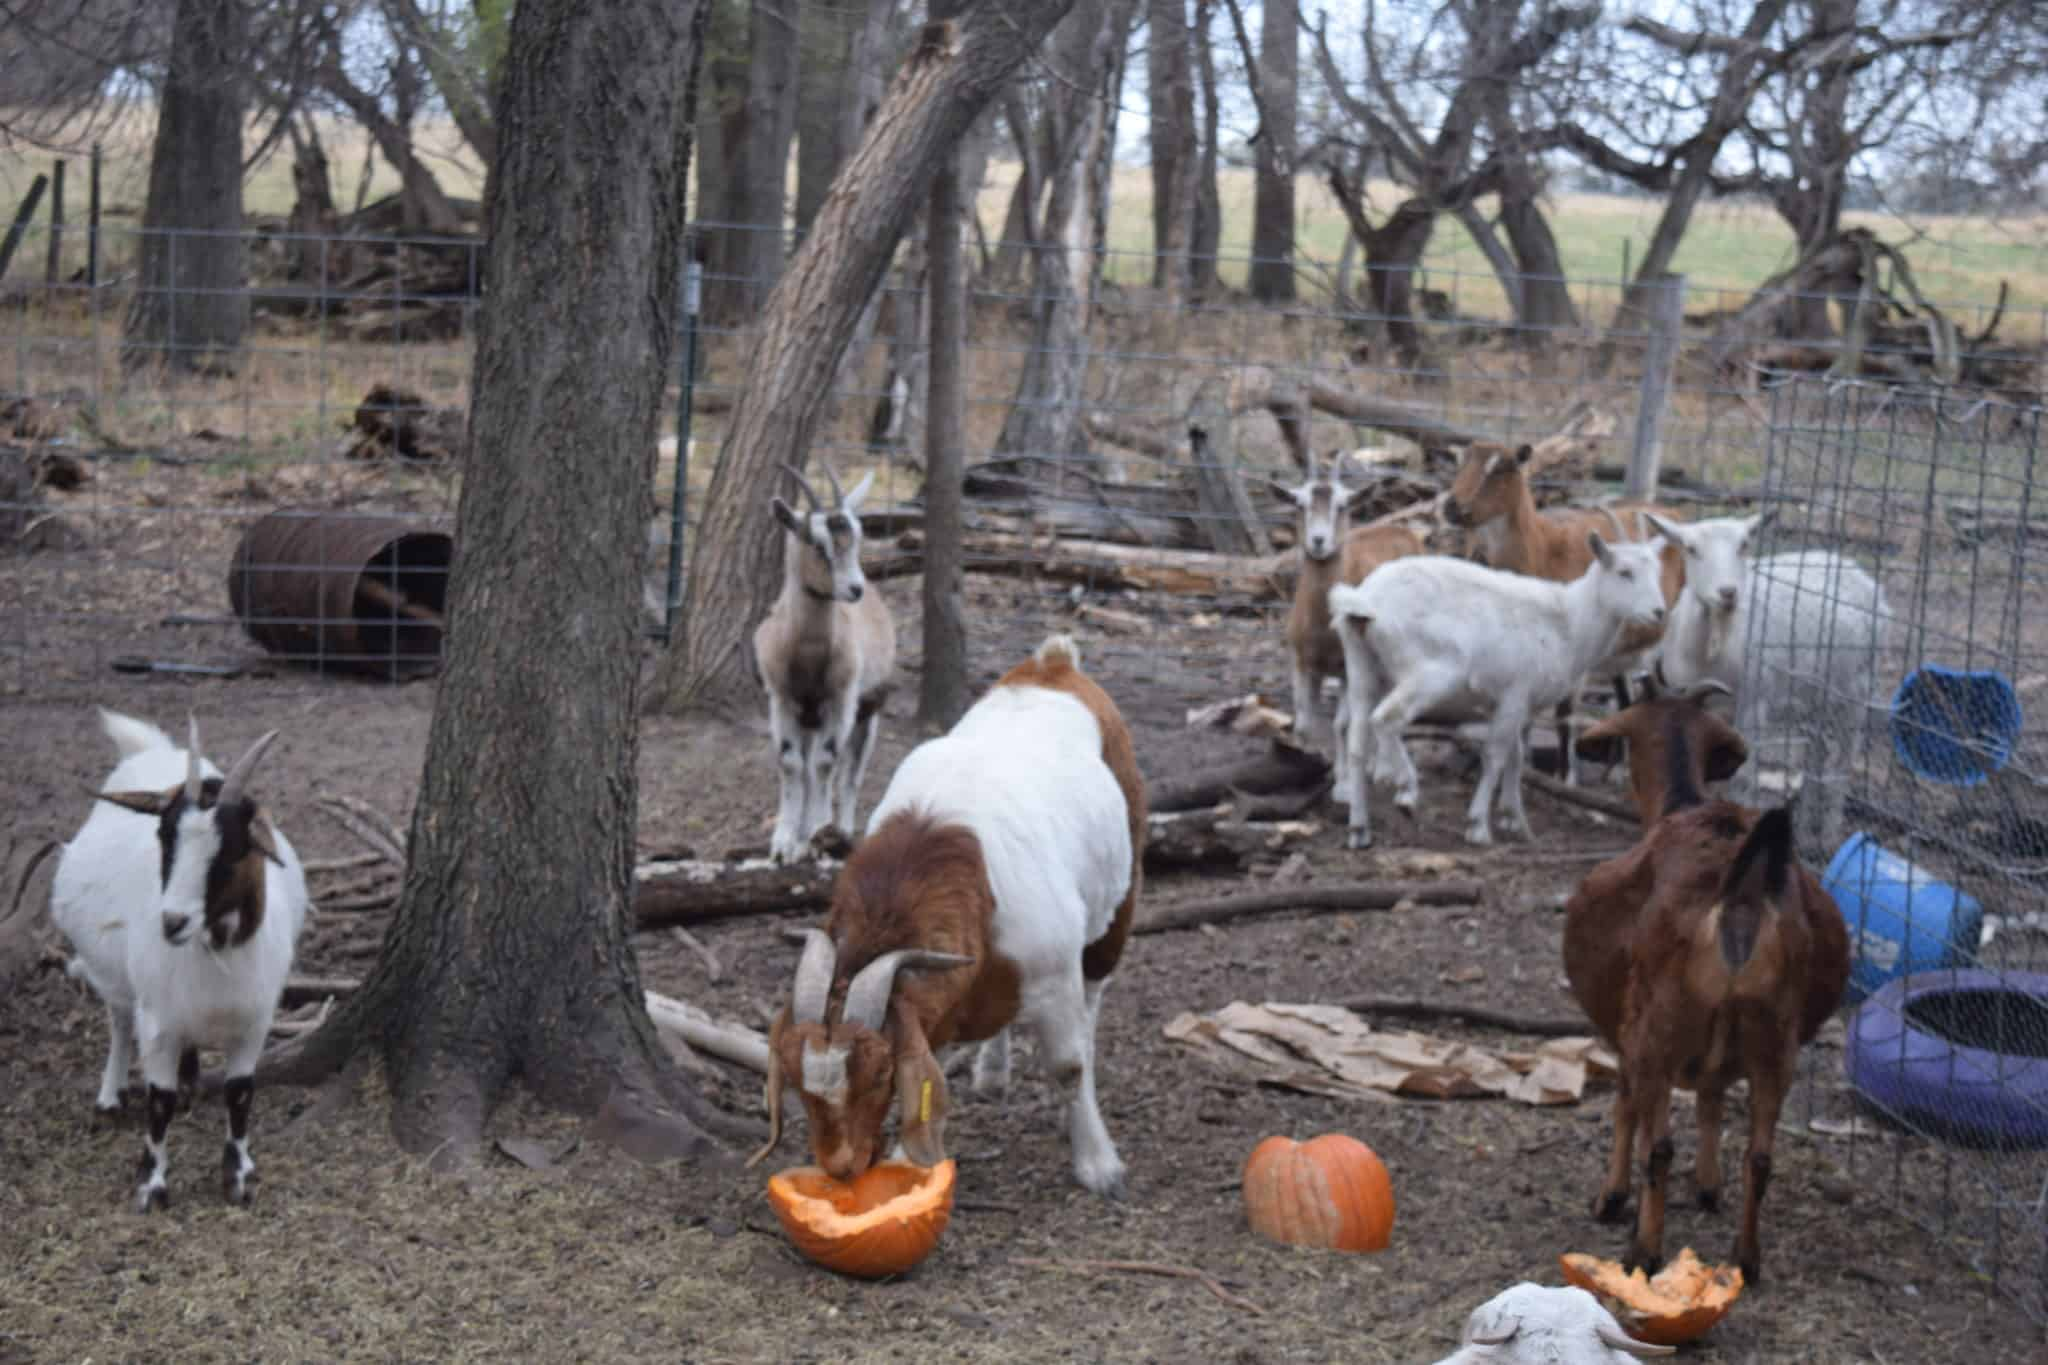 goats in outdoor pen and eating a pumpkin